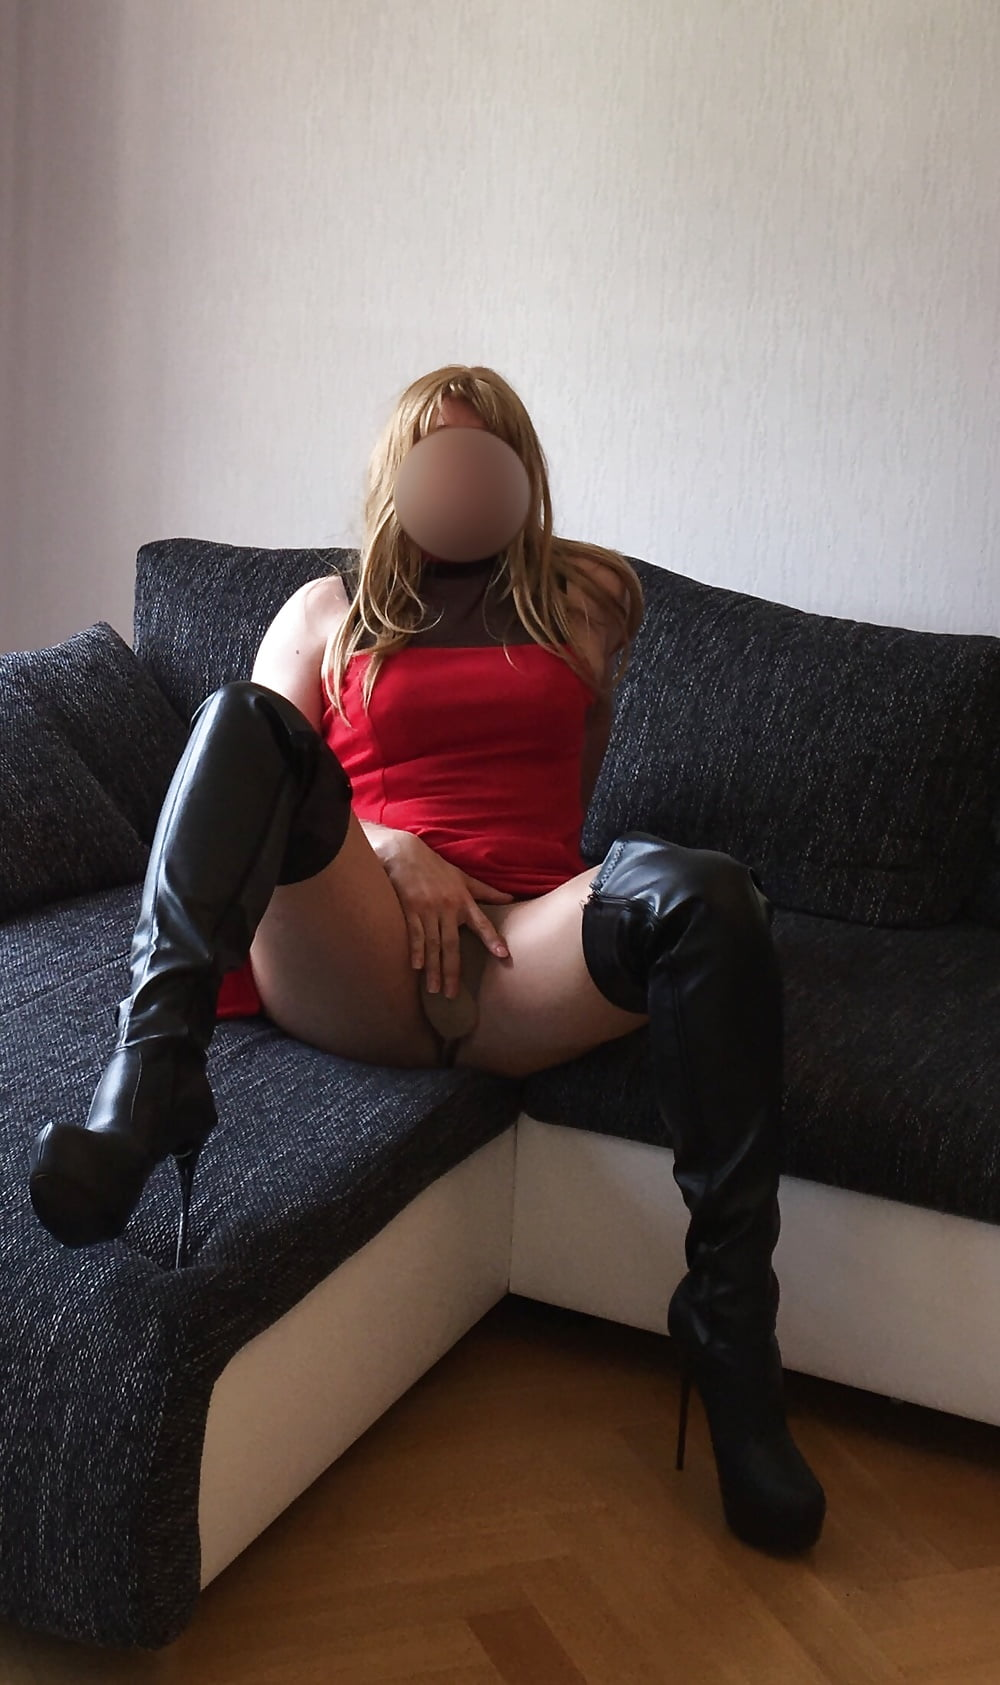 Pawg in thigh highs